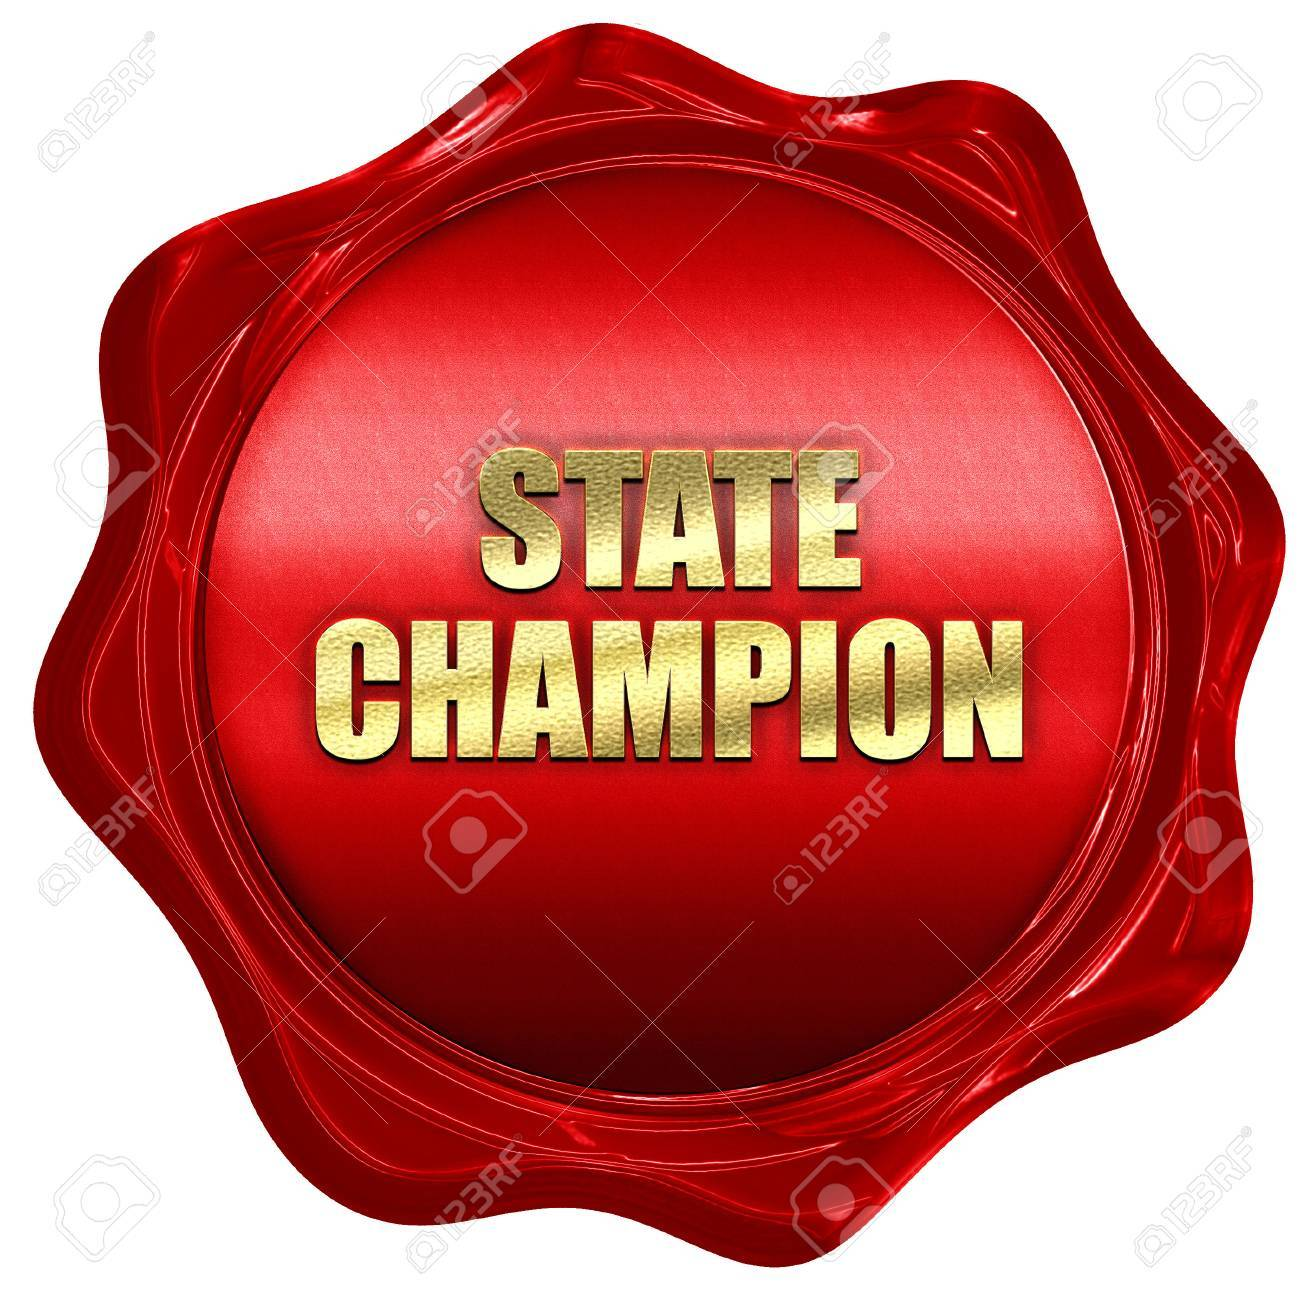 state champion, 3D rendering, red wax stamp with text